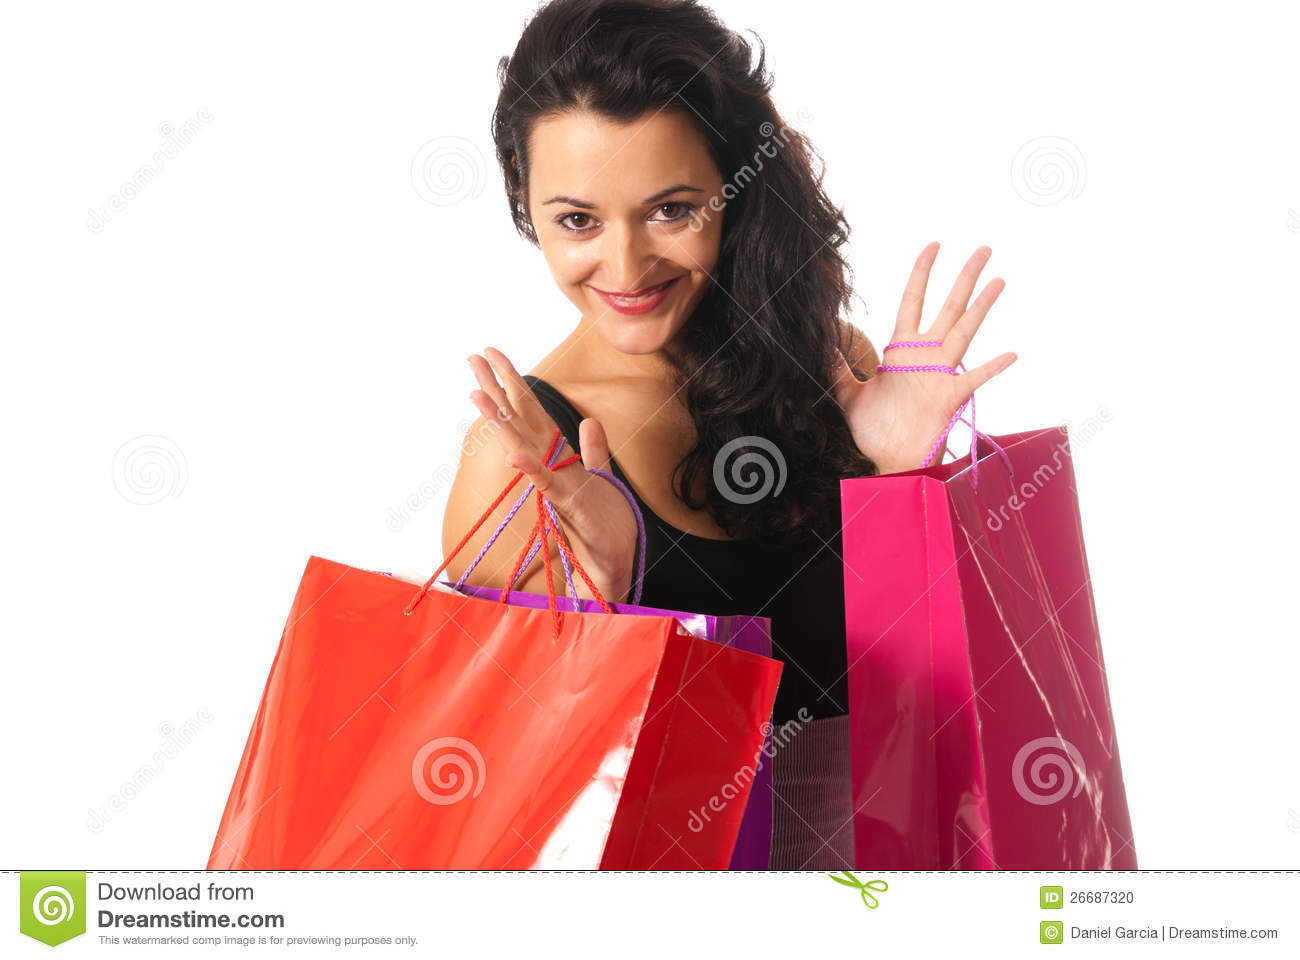 Young woman with shopping bags close-up isolated on white background